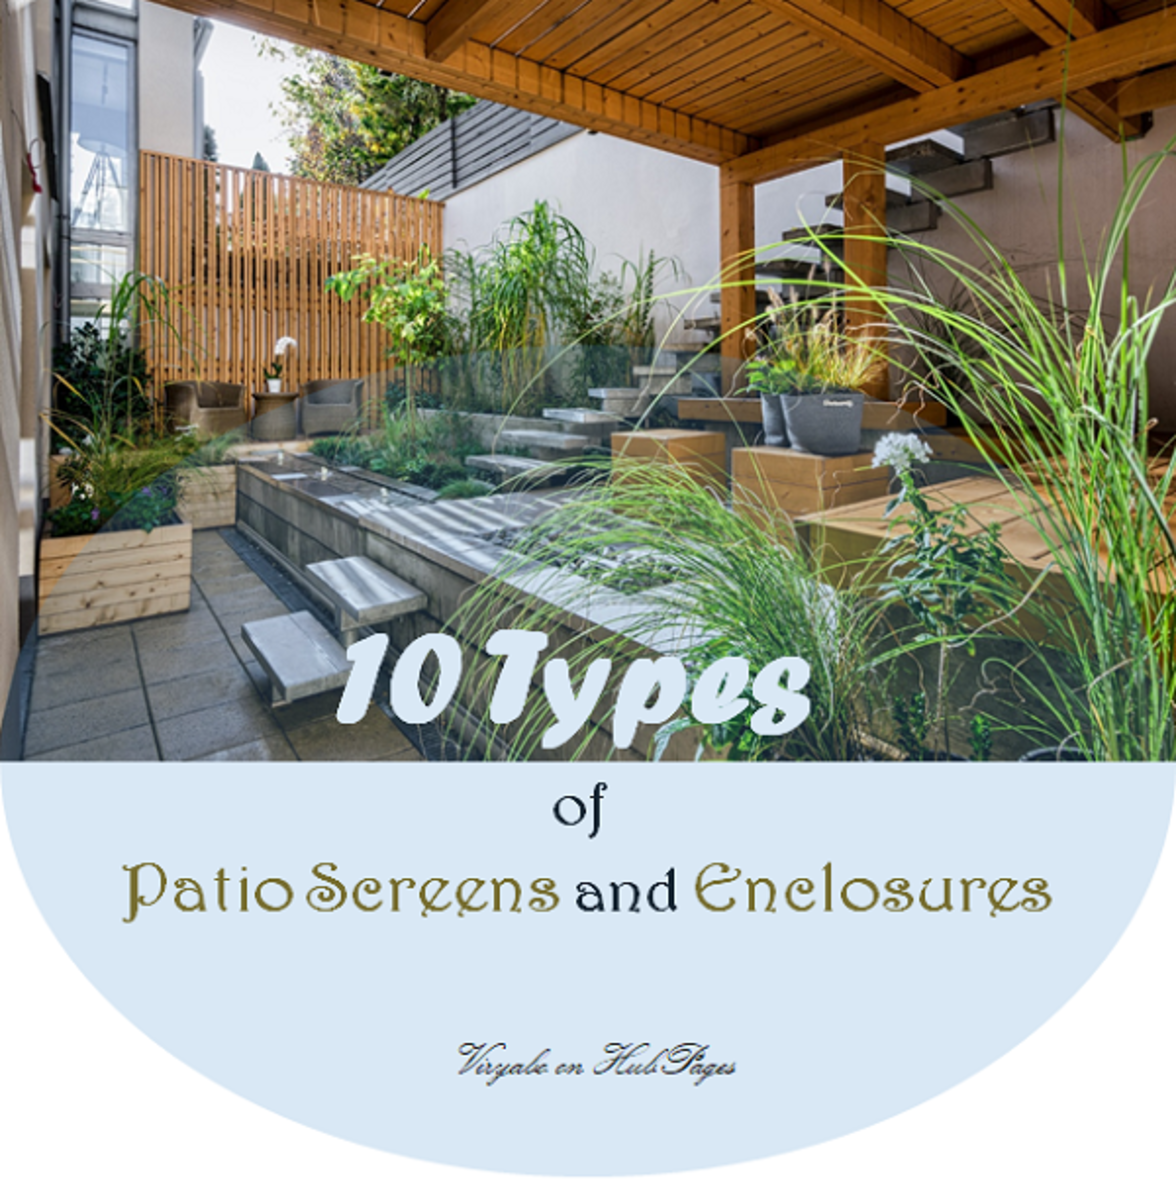 10 Types of Patio Screens and Enclosures